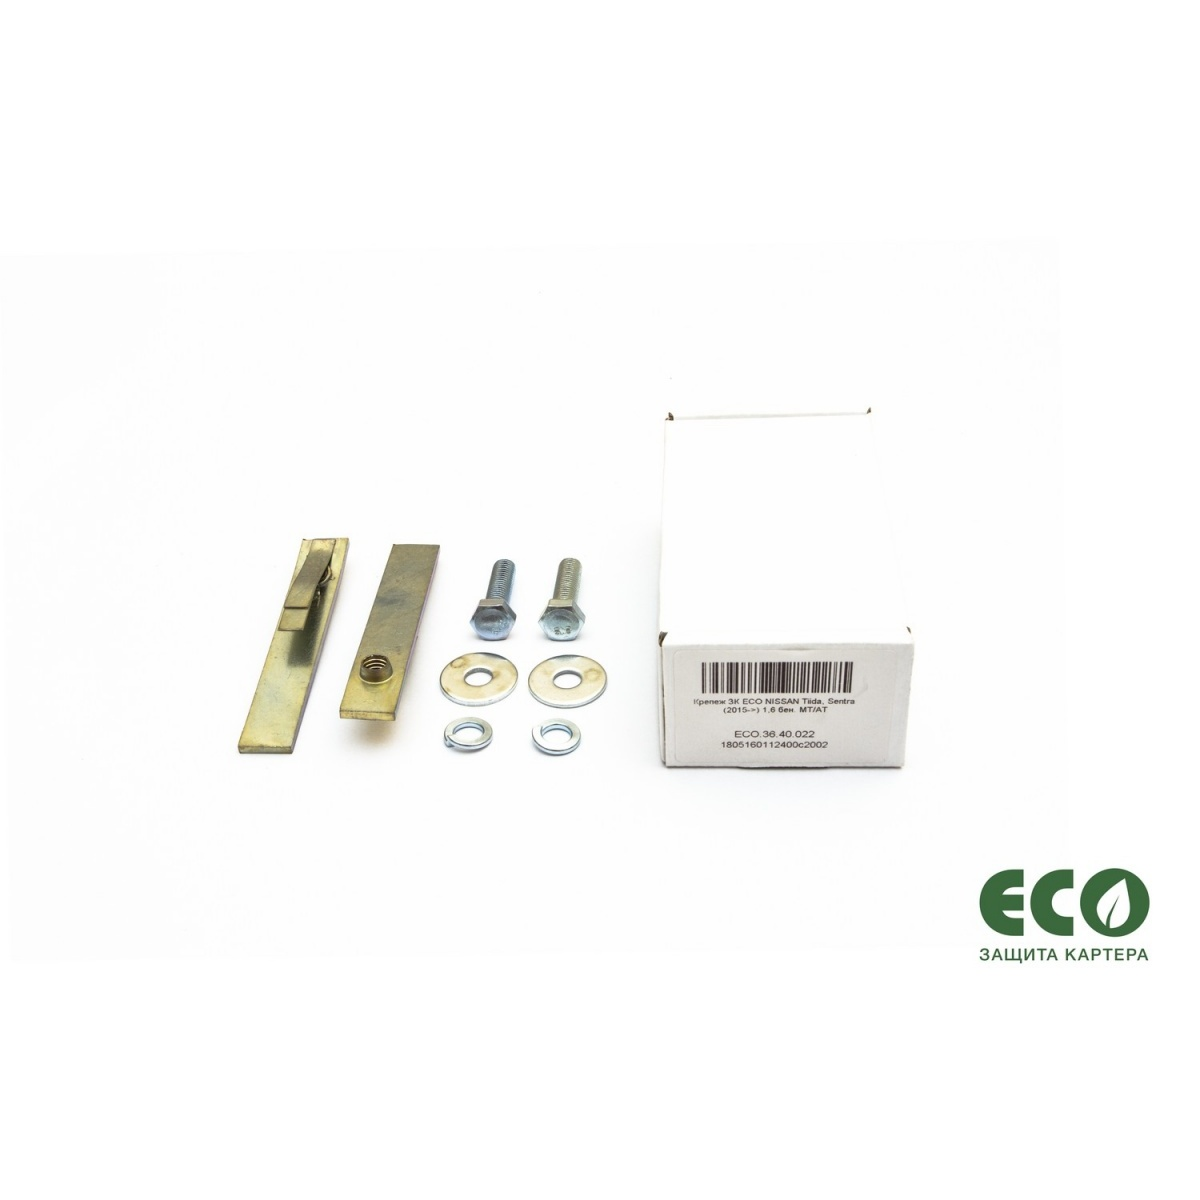 Fasteners ZK eco friendly  suitable for Nissan Tiida  Sentra (2015) 1 6 Ben. Mt/at Nissan Tiida)|  - title=